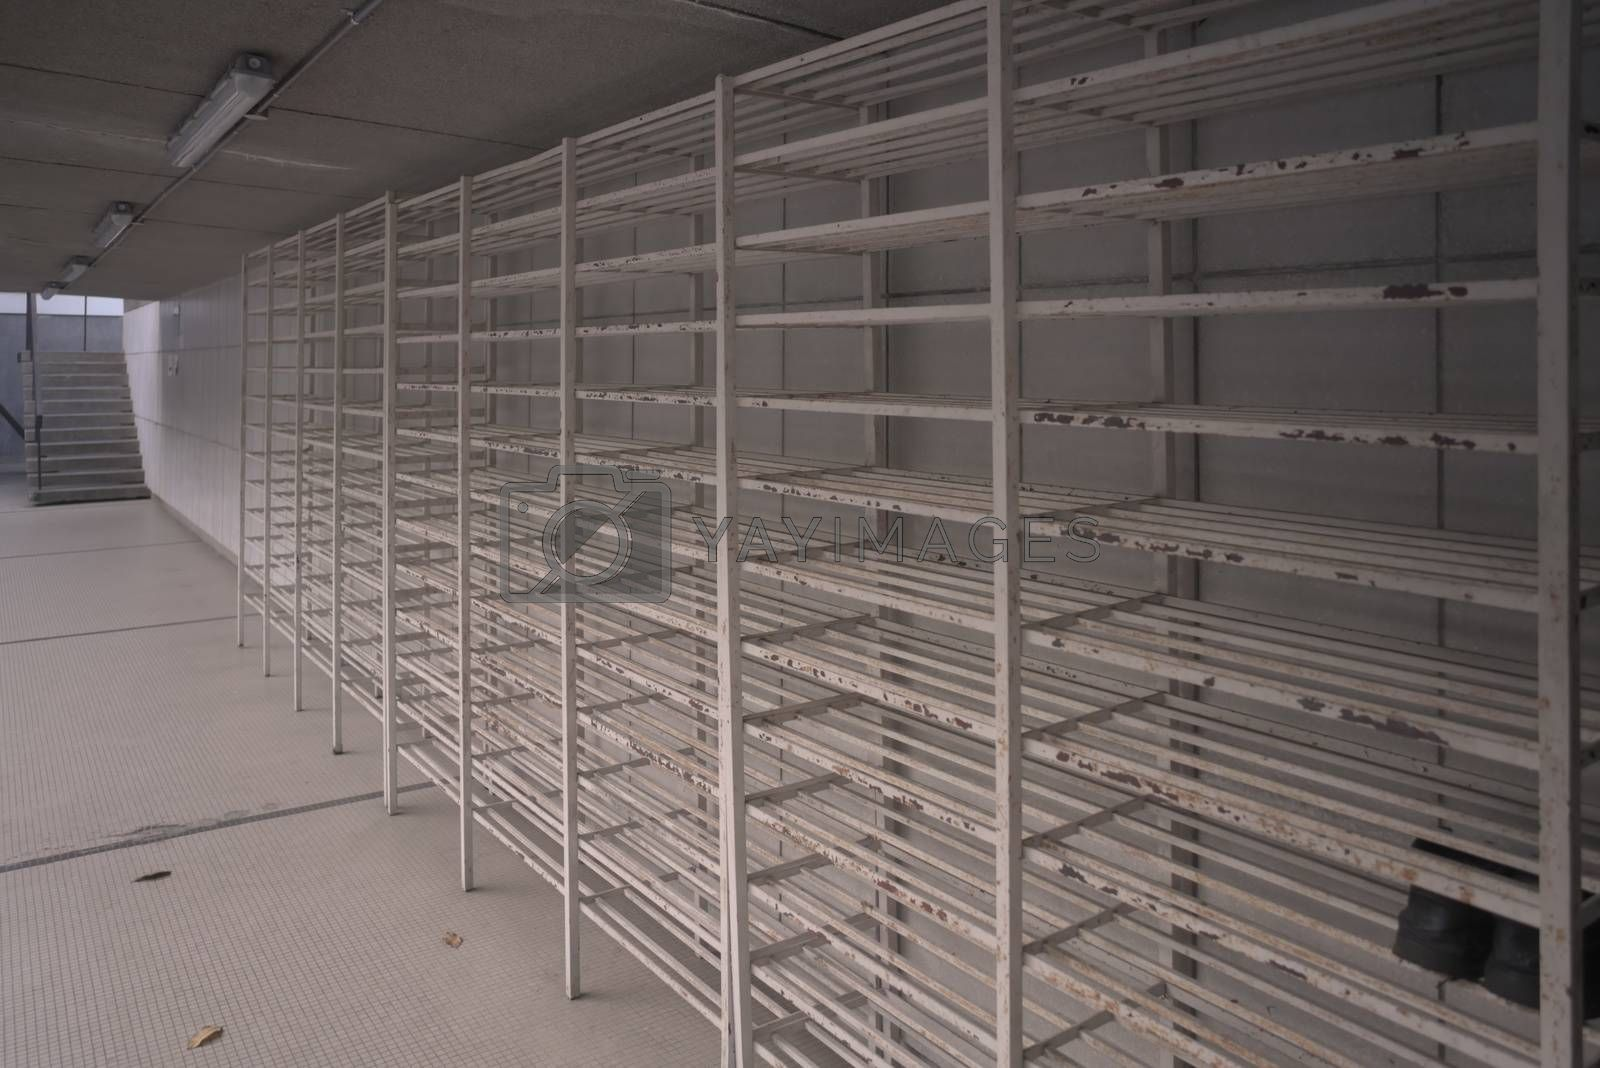 empty white metal bars shoes rack storage at the mosque taken from the side